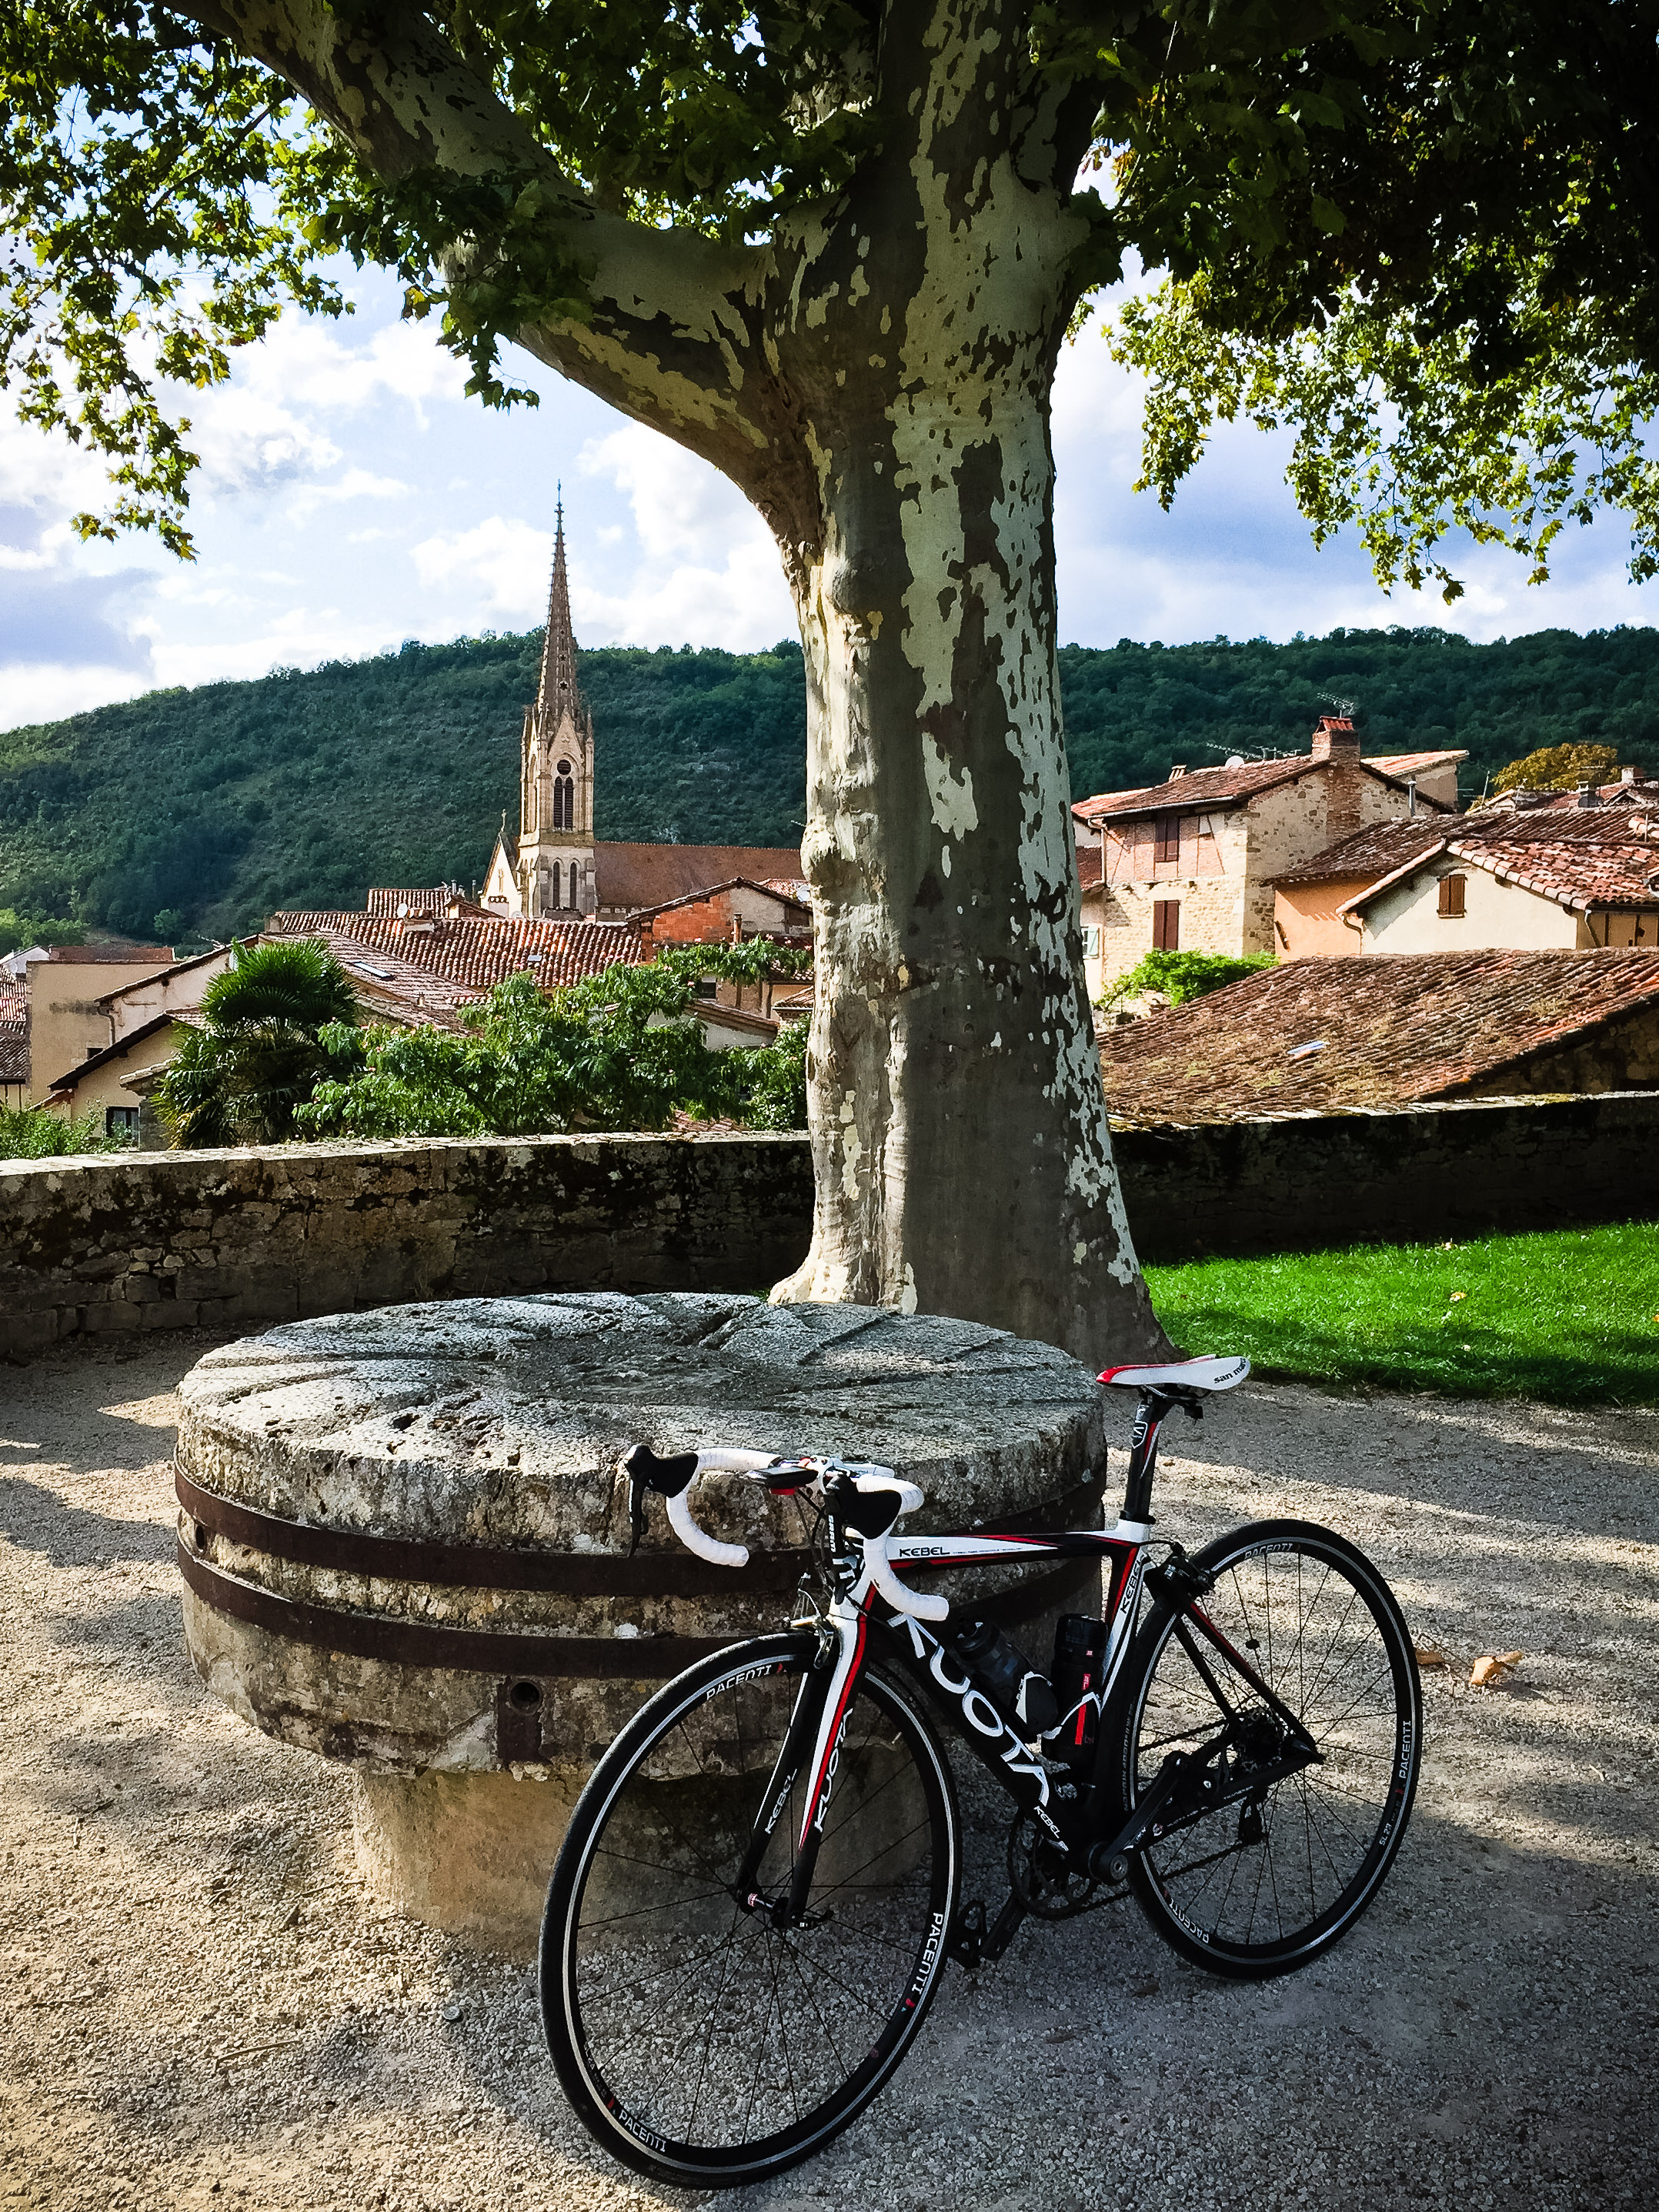 Road cycling midi-pyrenees